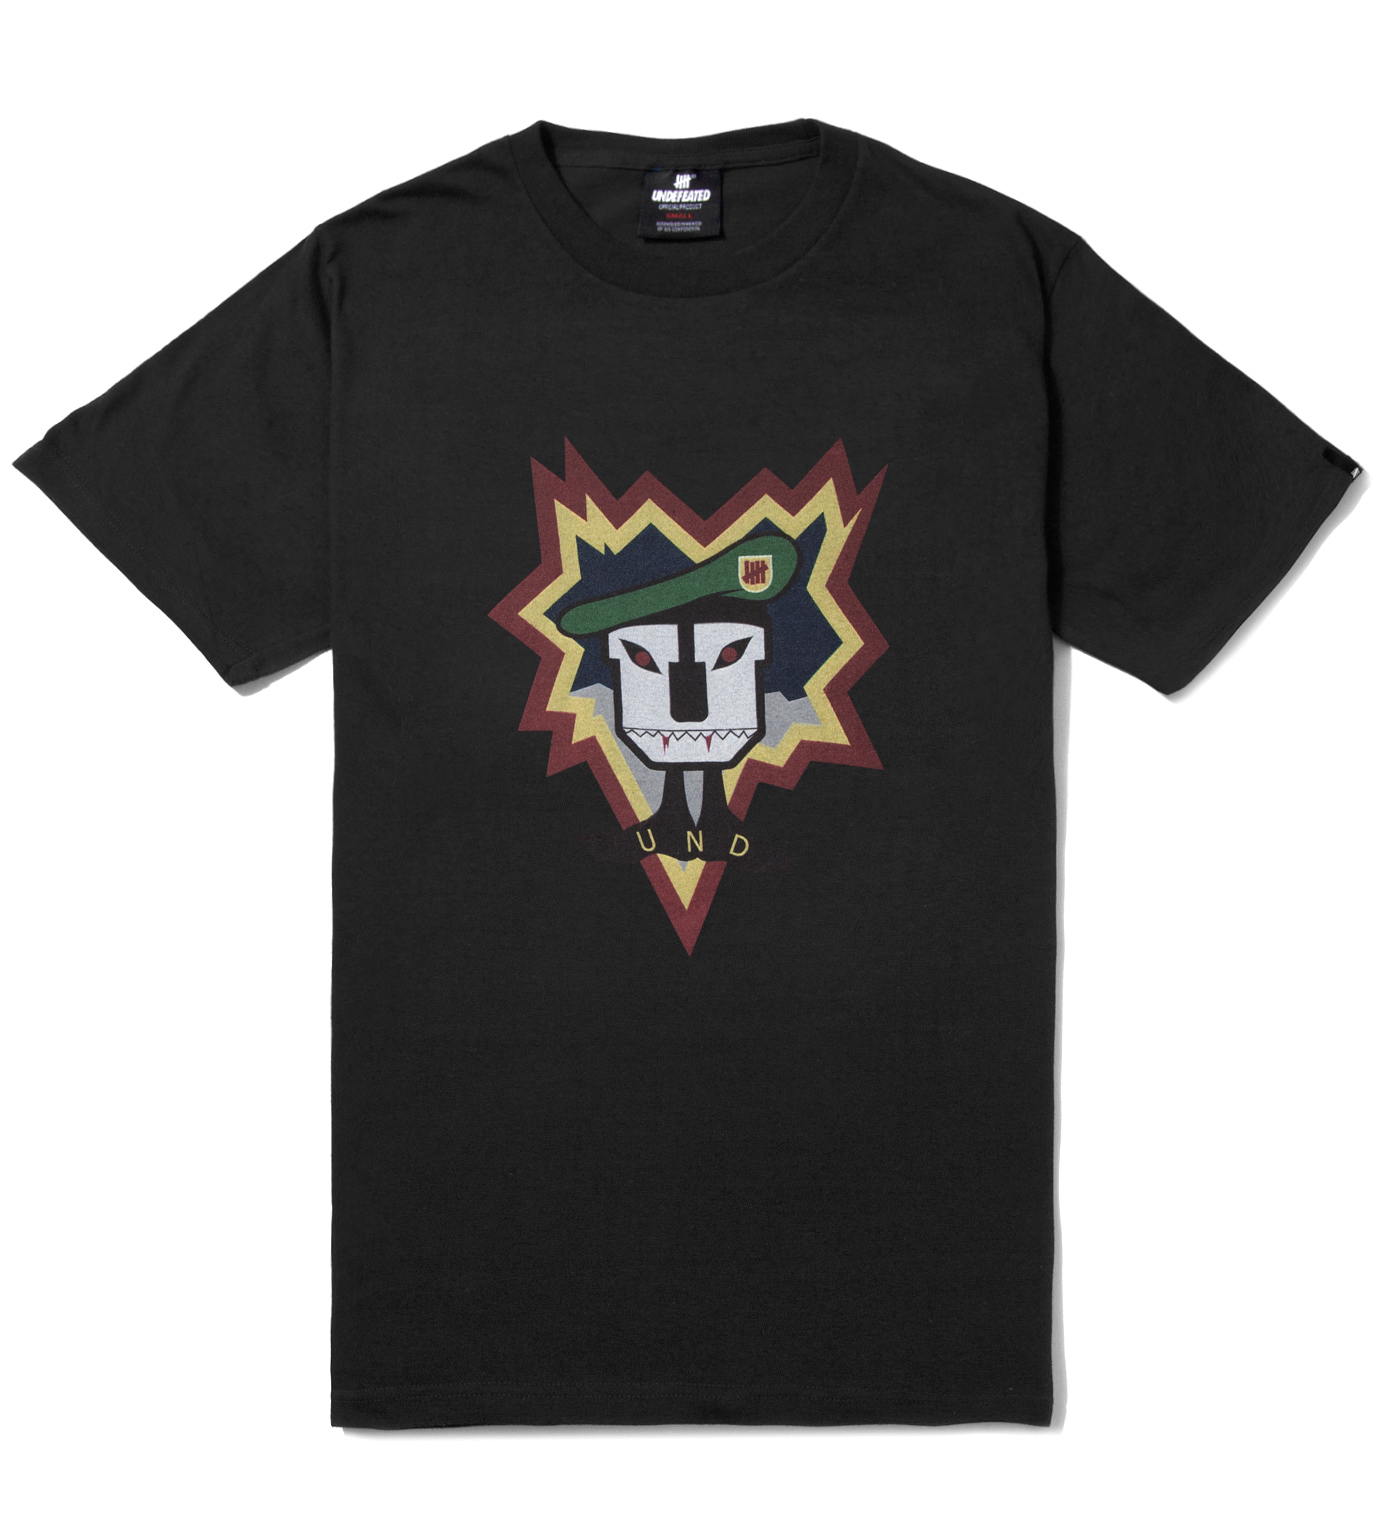 UNDEFEATED Black Recon T-Shirt